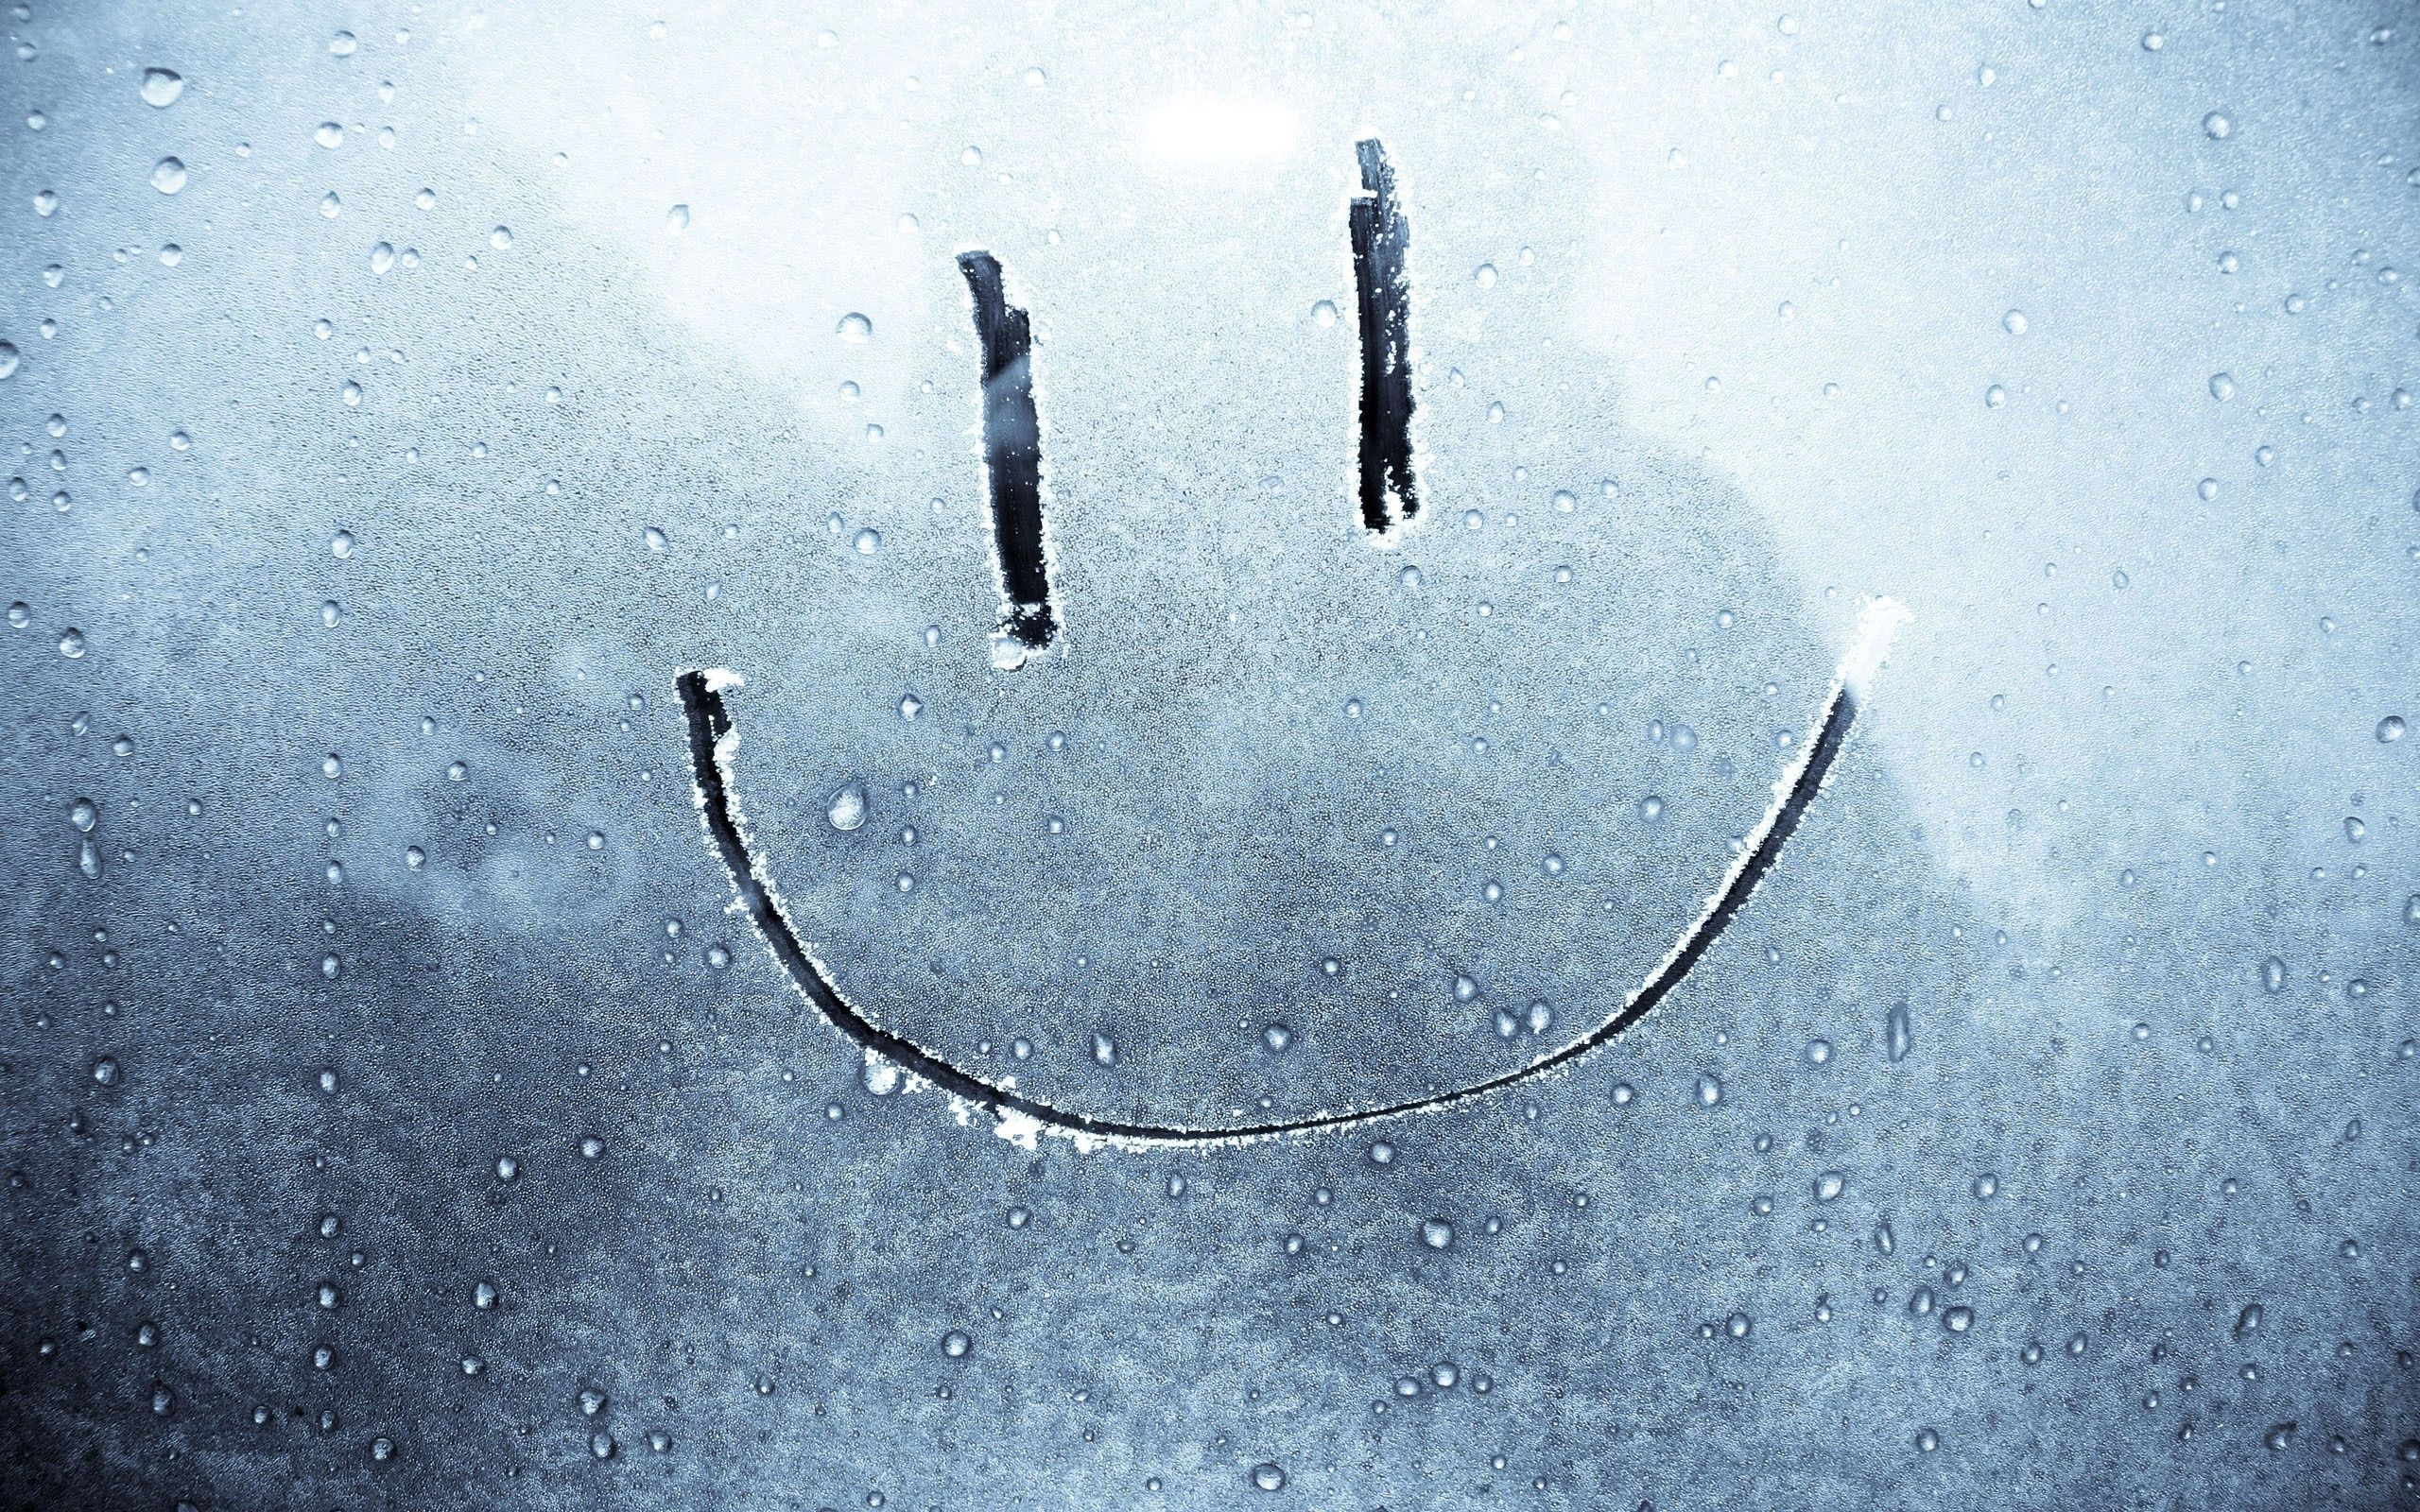 smiley face on a frozen window wallpaper for macbook air